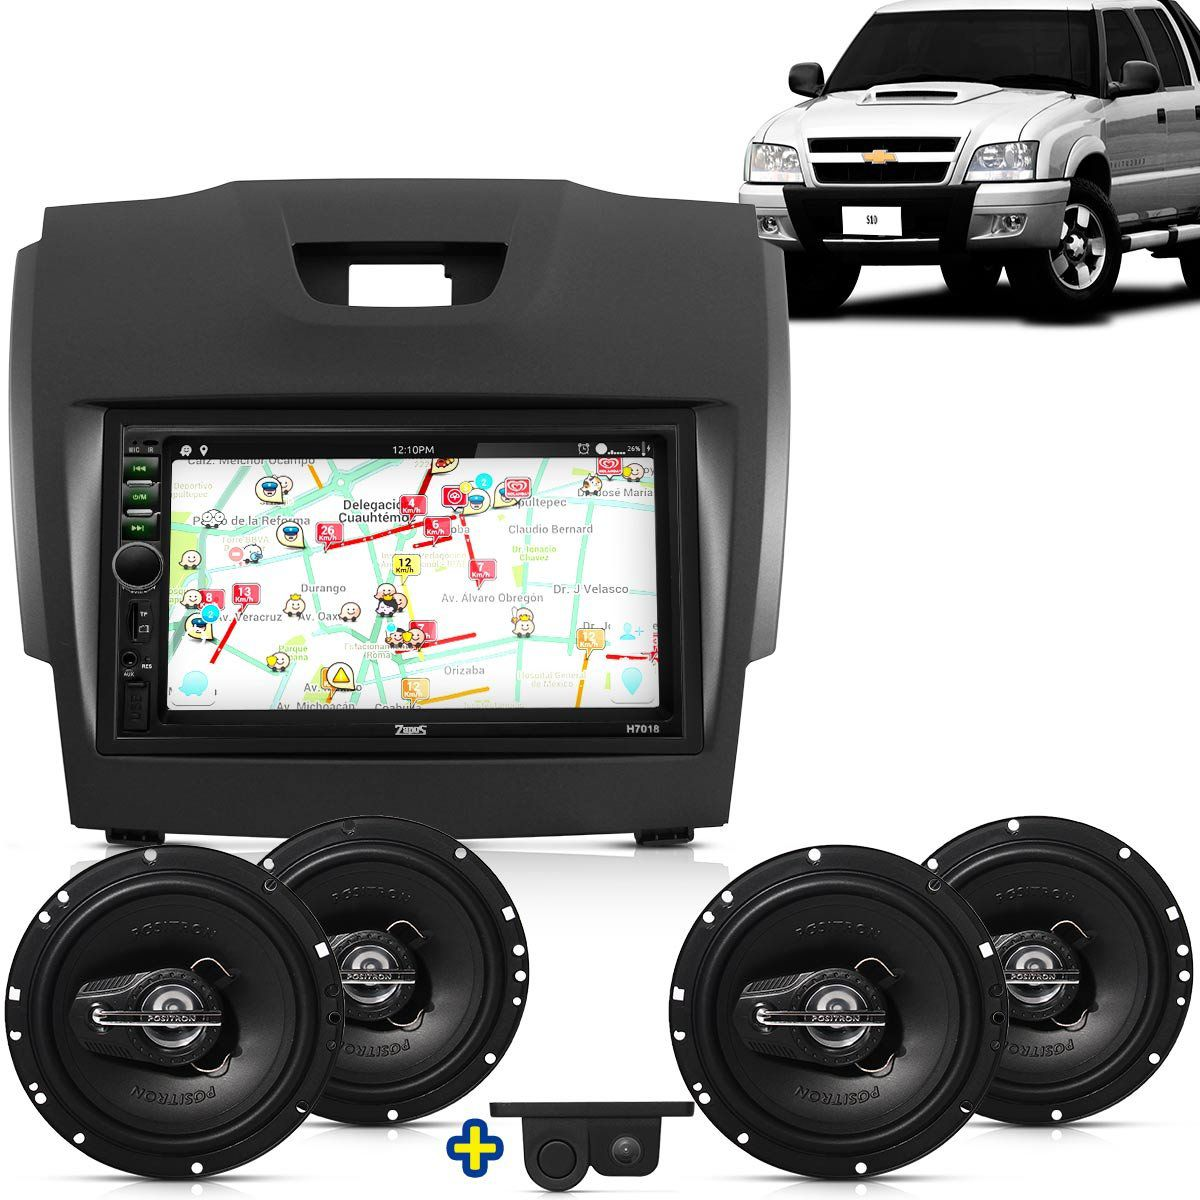 Kit Multimidia Mp5 S10 Trail Blazer 2012 2013 + Moldura Camera Ré Sensor 2 Pares Alto Falantes 6